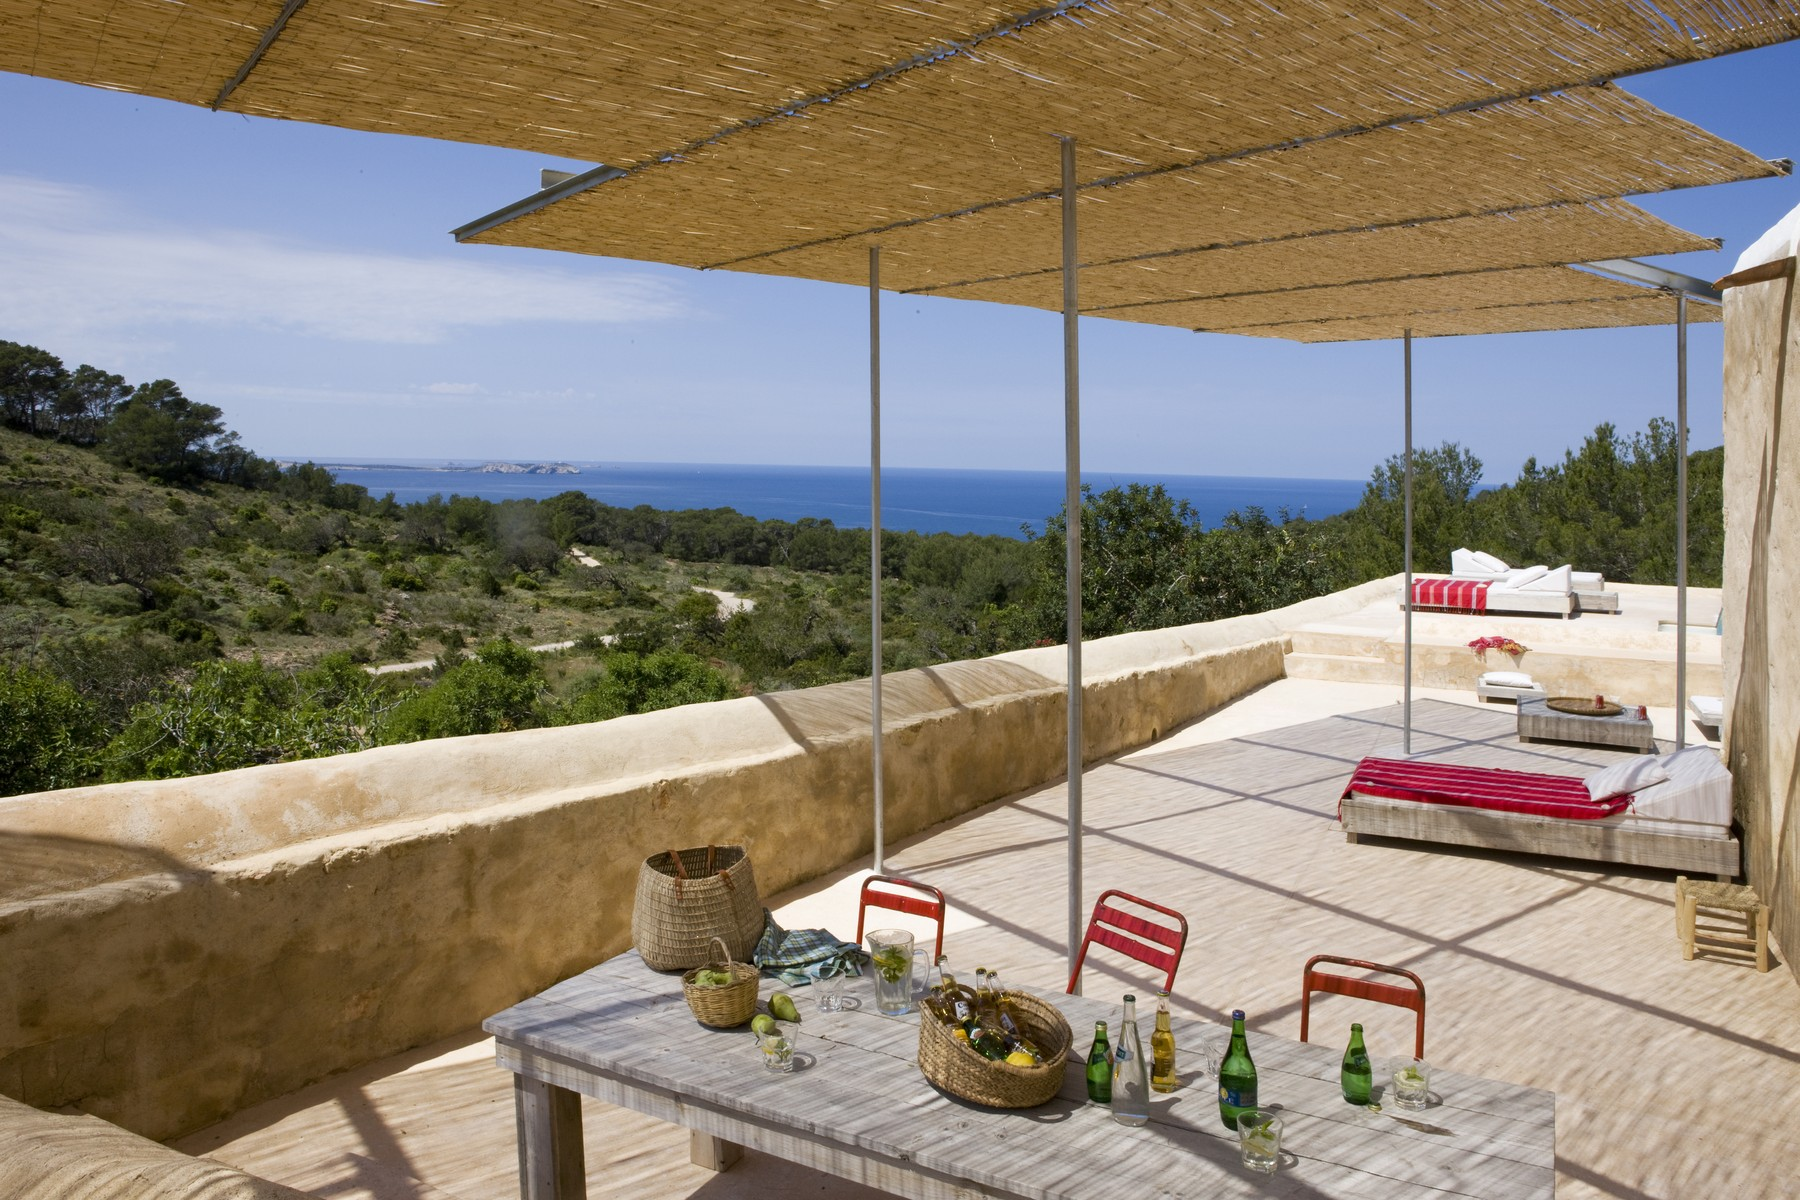 Villa per Vendita alle ore Old Ibizan Jewel With Open Sea Views And Sunset San Antonio Abad, Maiorca, 07820 Spagna